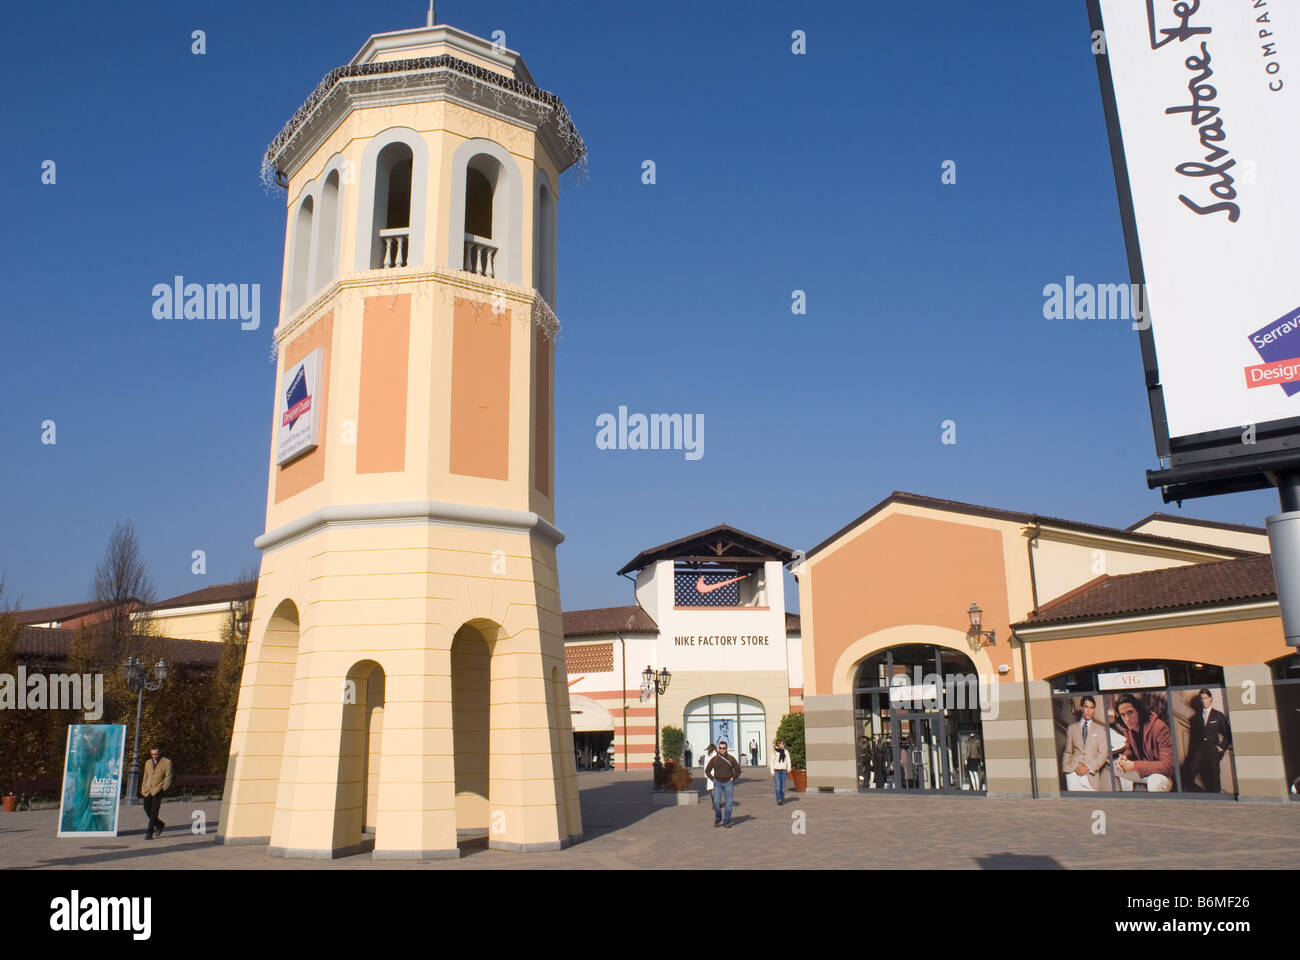 Serravalle Scrivia outlet shopping center Serravalle Scrivia ...